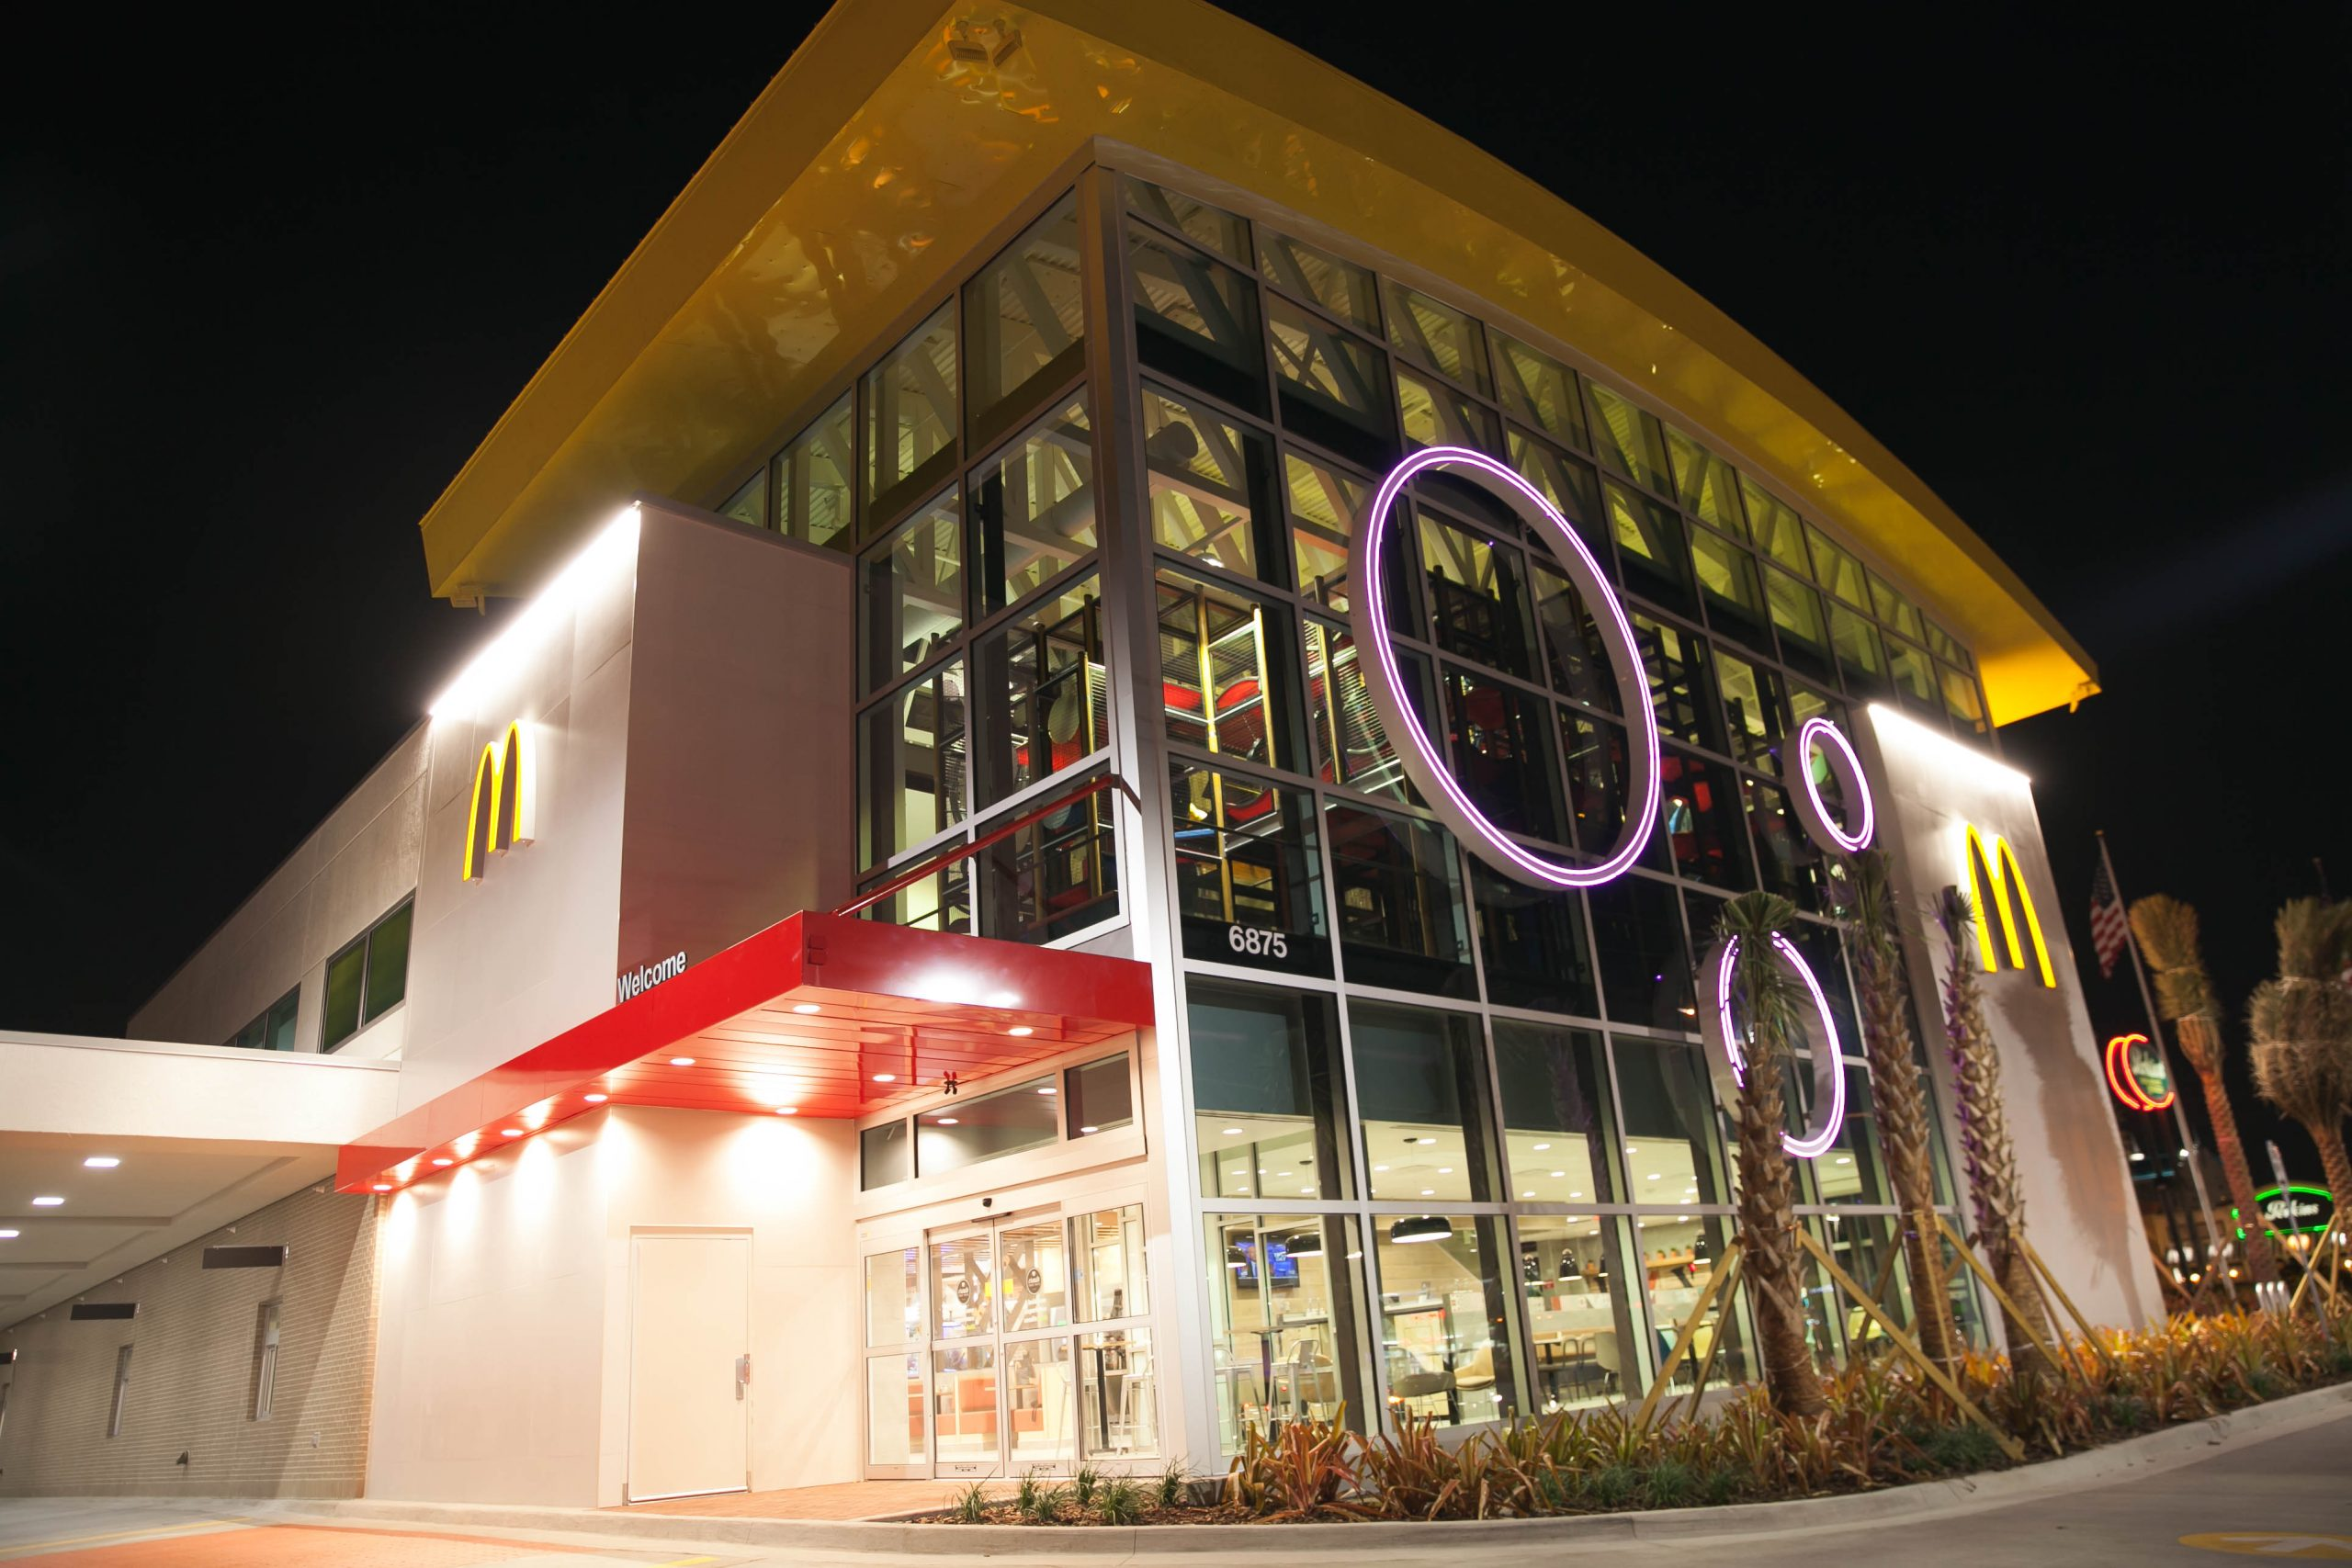 World's Largest McDonalds - Things To Do In Orlando Besides Theme Parks